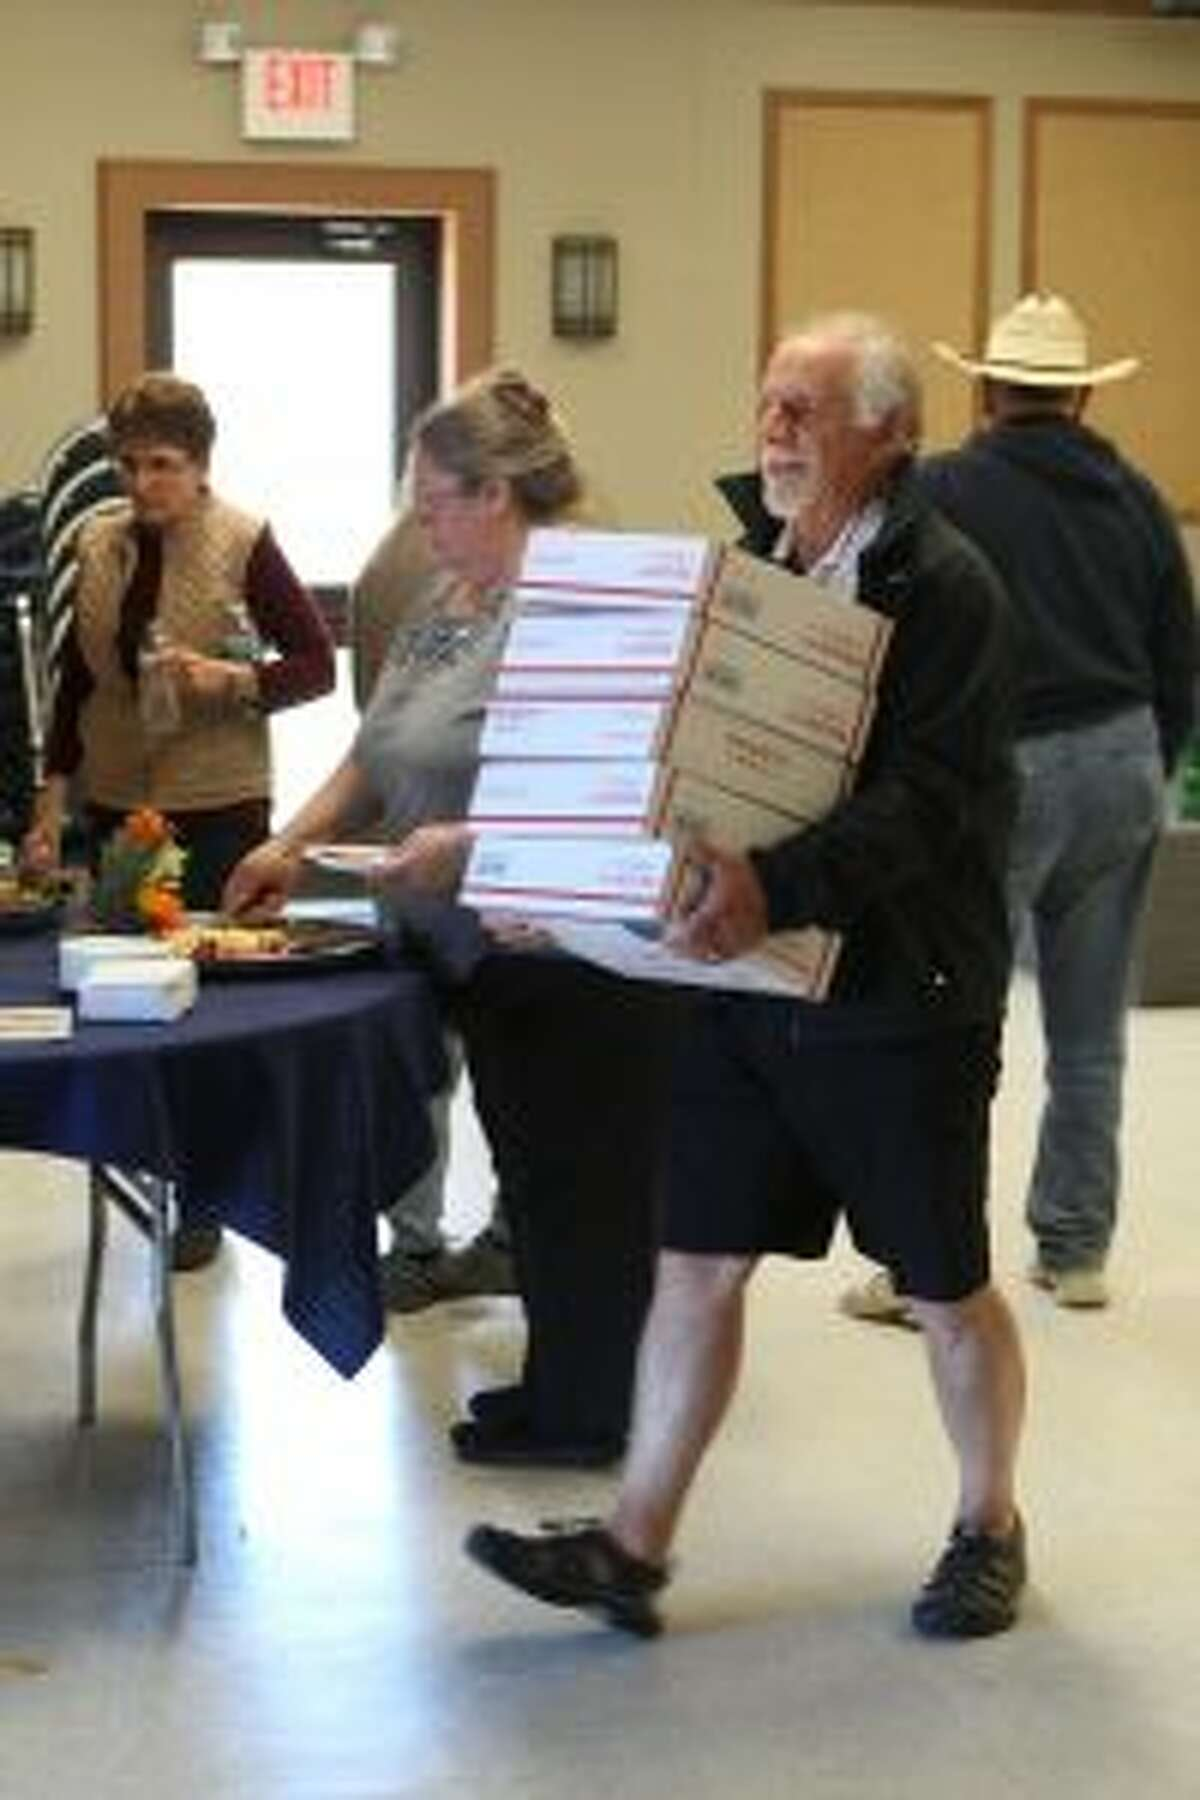 Dozens and dozens of U.S. Postal Service boxes were packed during Monday's Jerky for Troops event at CK's Place, south of Big Rapids. The annual event helps serve as a morale booster to local service members and their comrades who are stationed throughout the world.